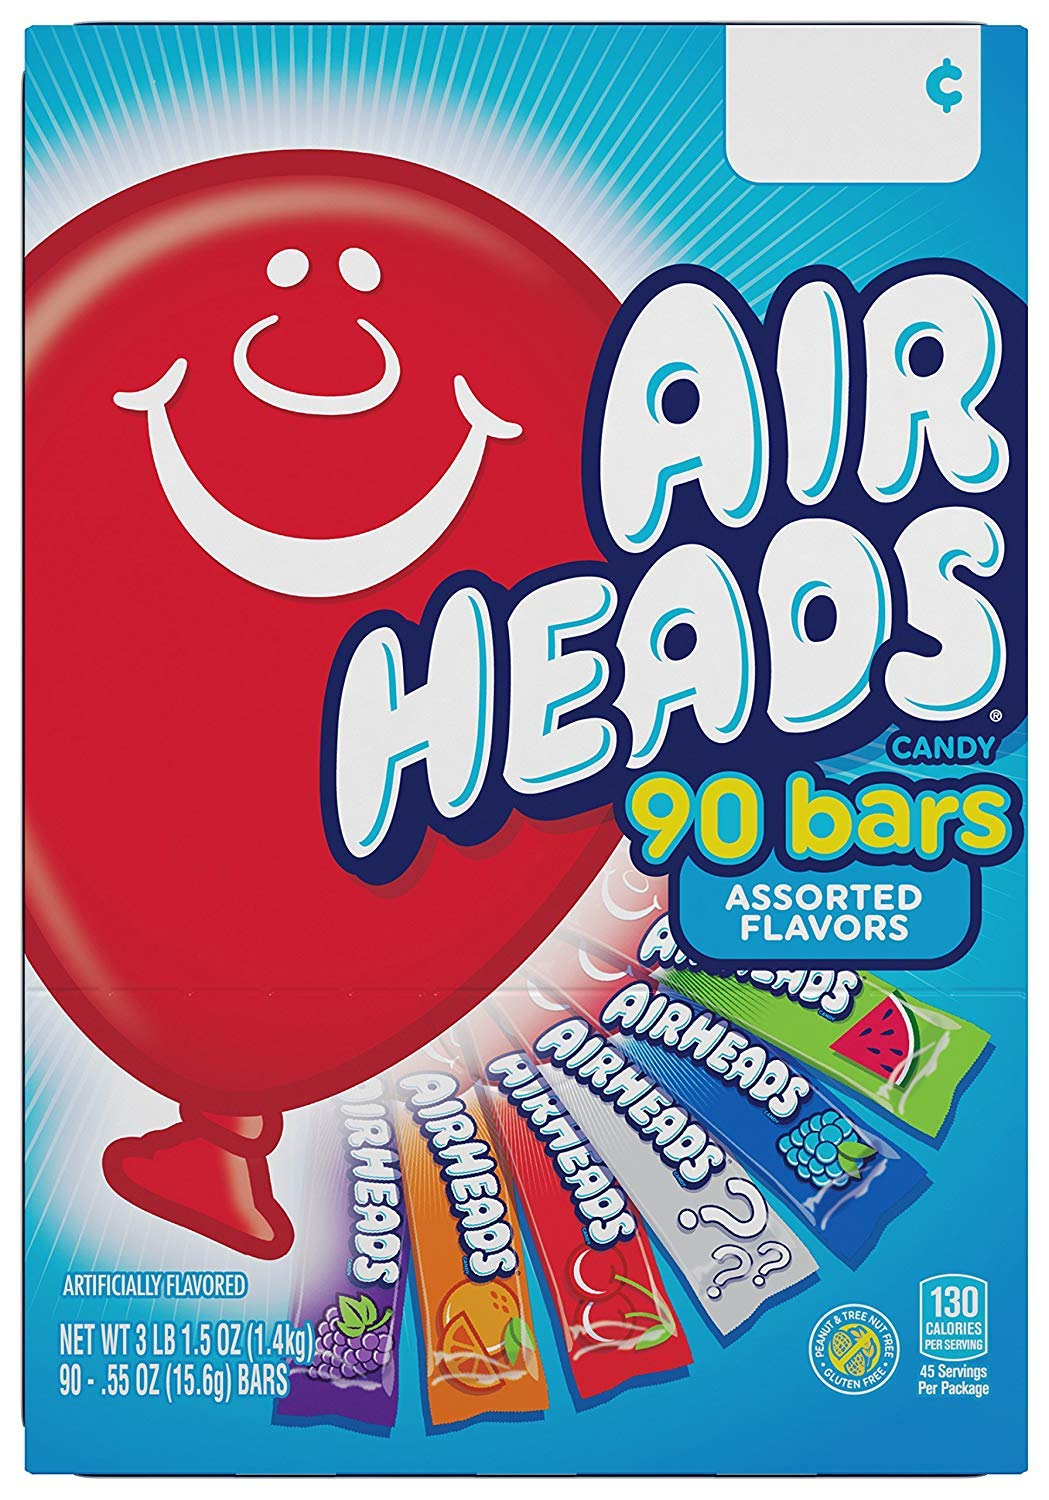 Airheads Bars, Chewy Fruit Candy, Easter Basket Stuffers, Variety Pack, Party, Non Melting, 90Count (Packaging May Vary), 2 Pack by Airheads (Image #2)